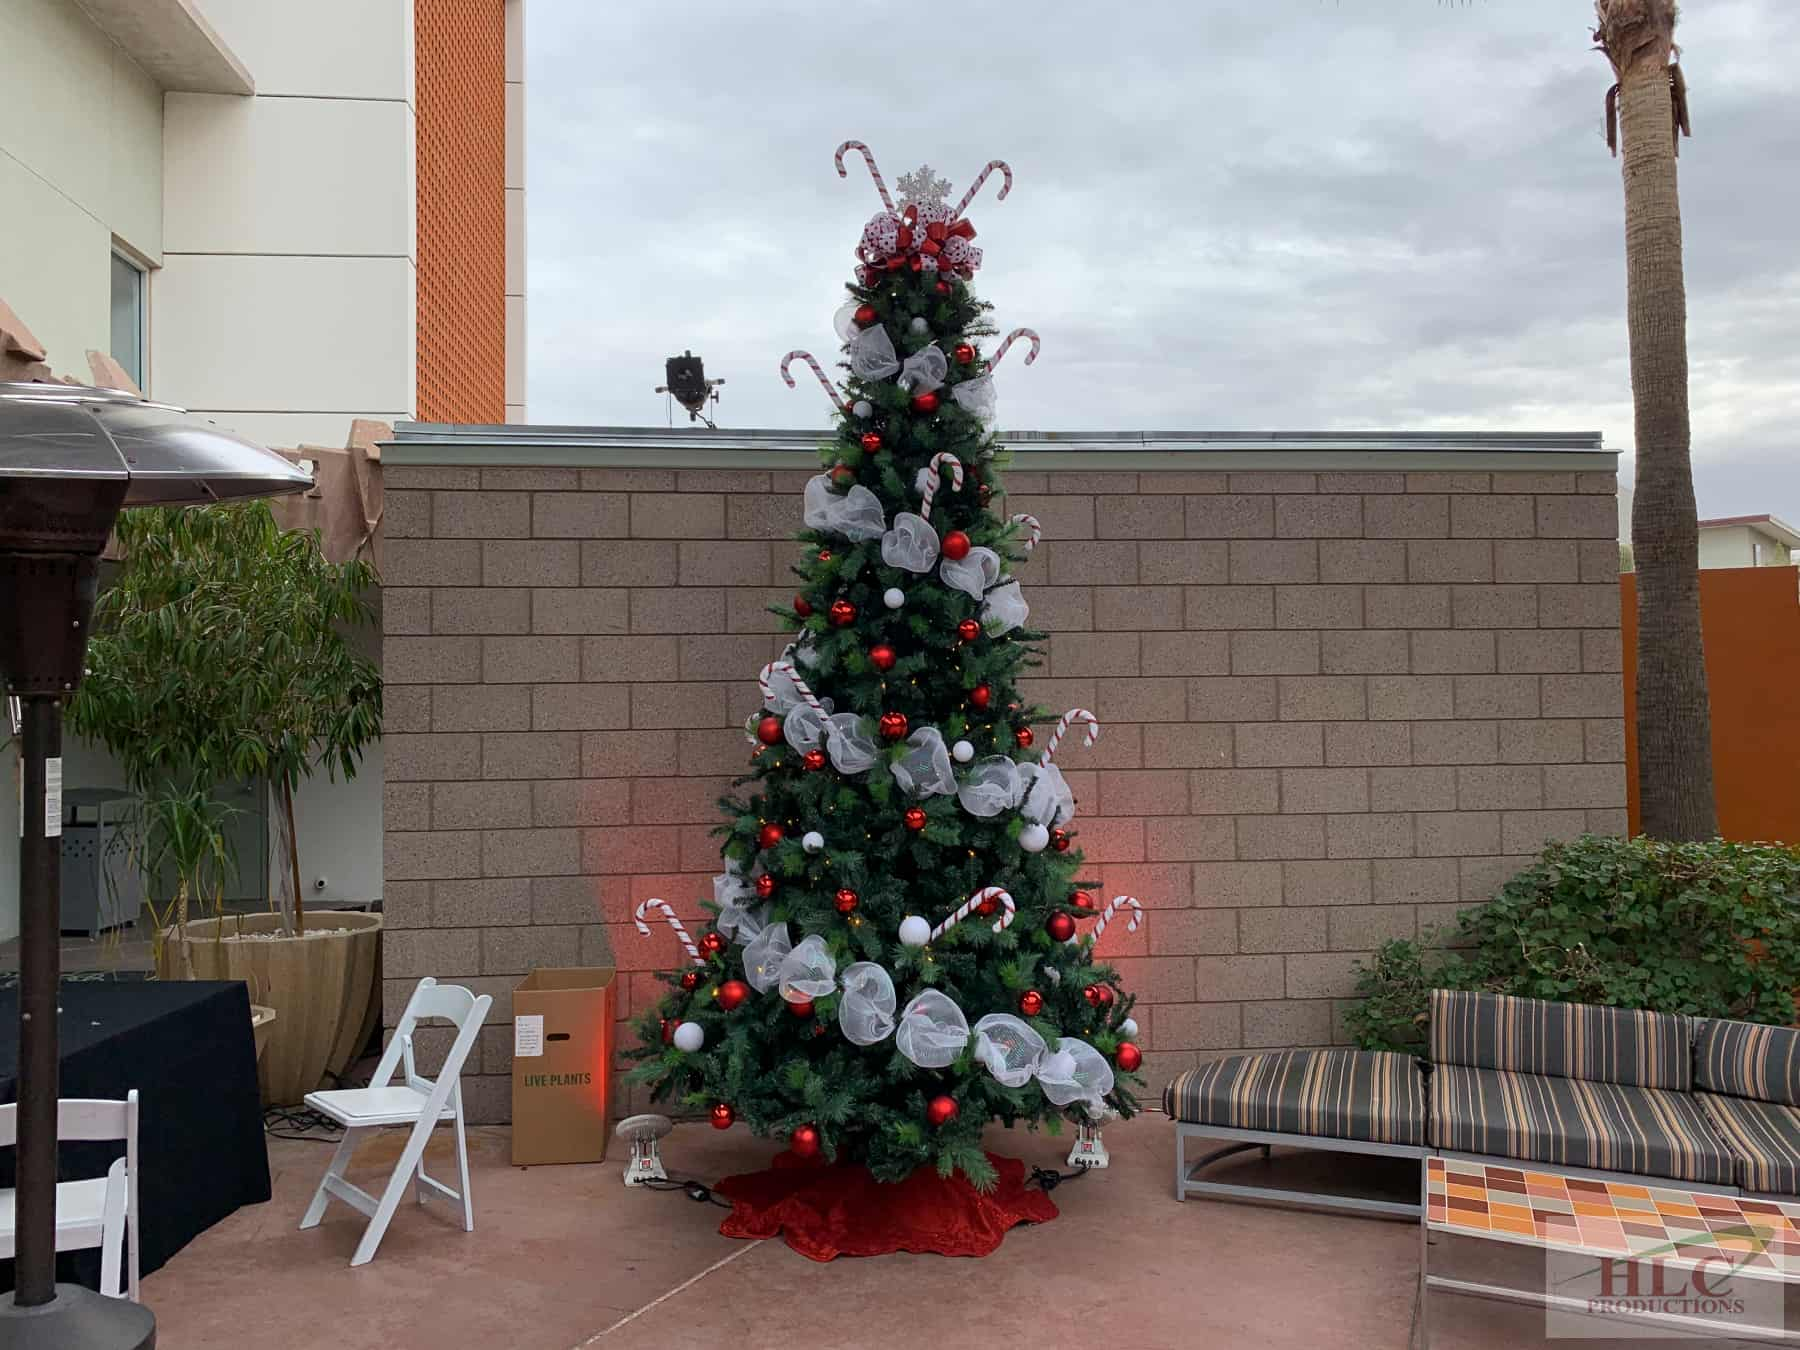 12ft Christmas Tree with Floods